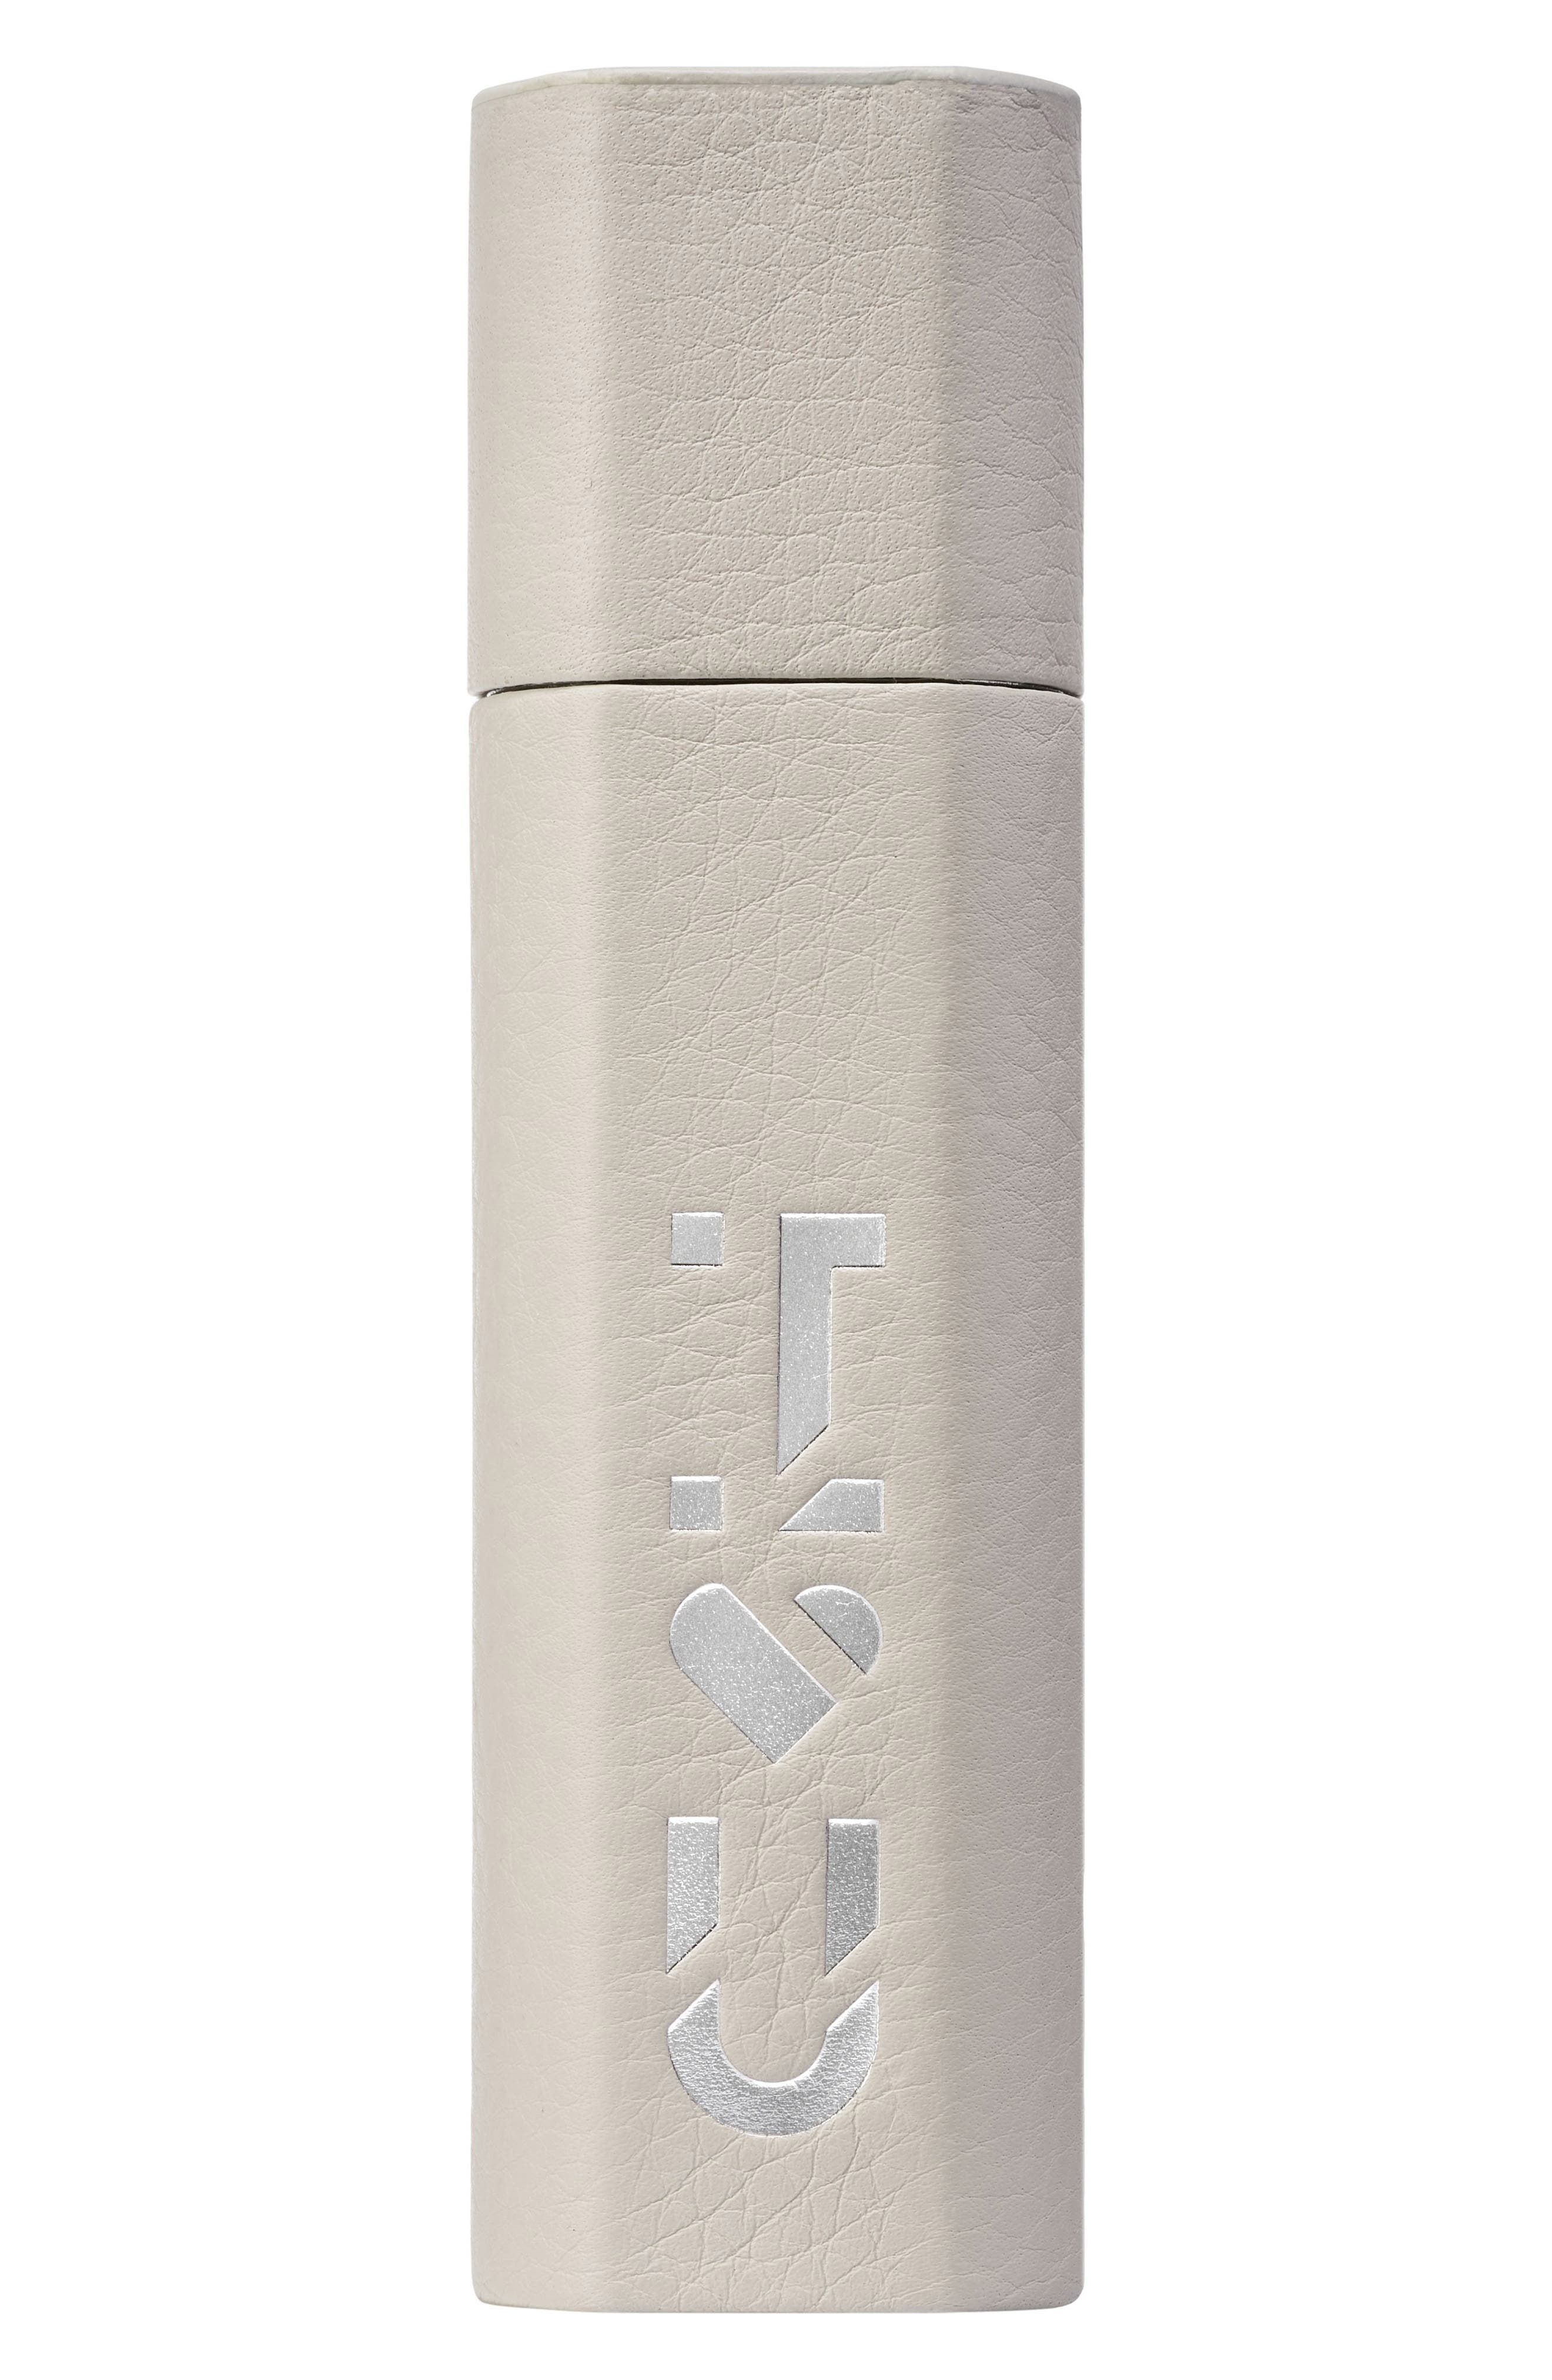 Alternate Image 1 Selected - BYREDO I Love You Travel Spray Case (Limited Edition)